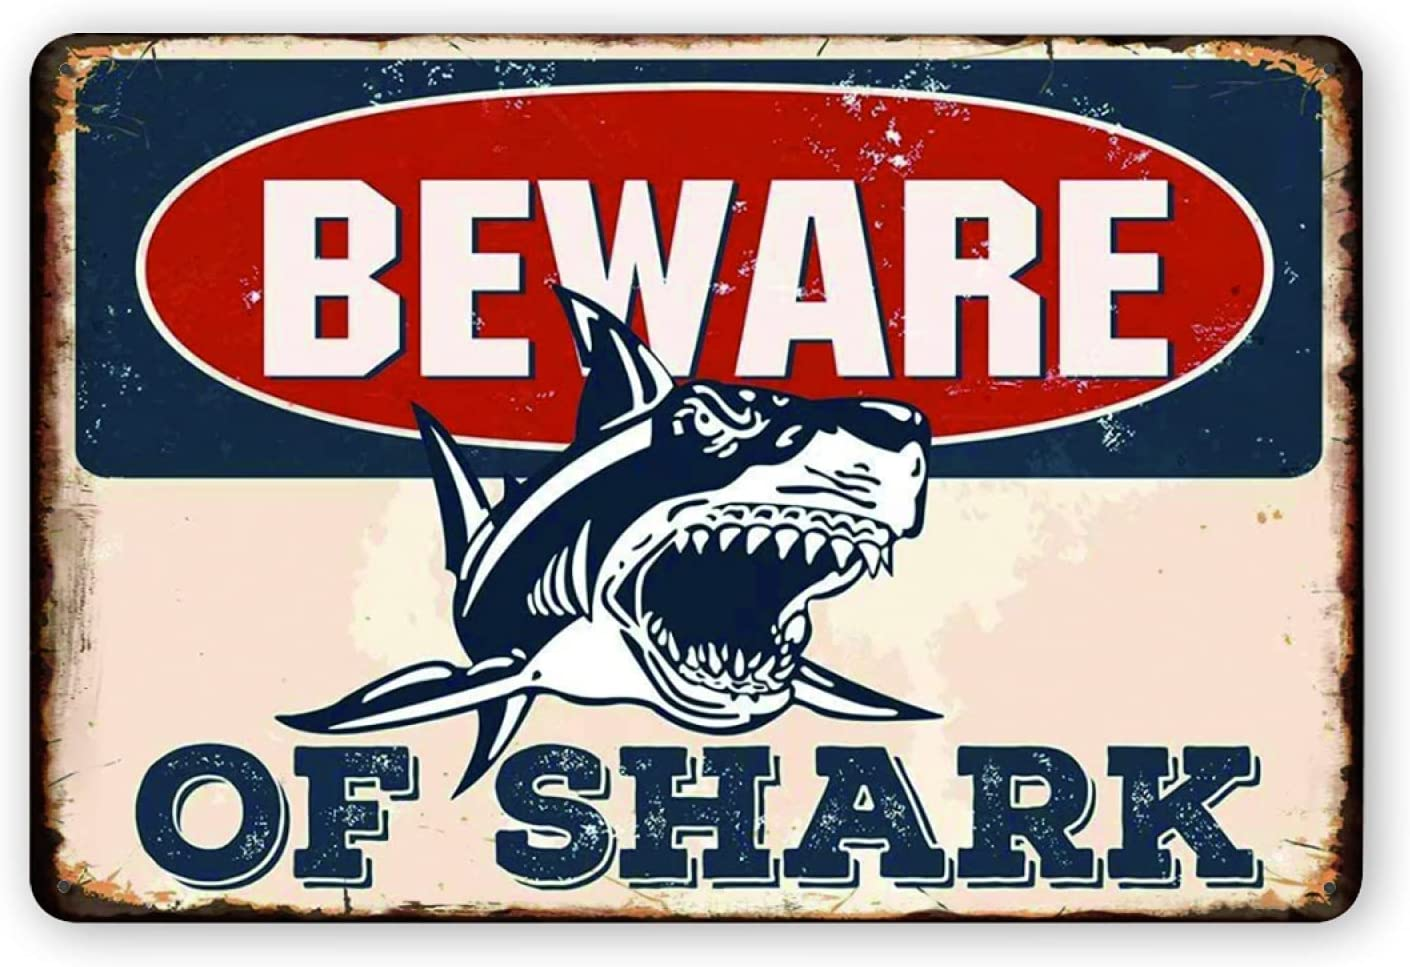 FGRYFRU Tin Sign Vintage Retro Beware of Shark Metal Poster Home Garage Bar Coffee Kitchen Wall Decor Plaque for Man Cave 12x8 Inch